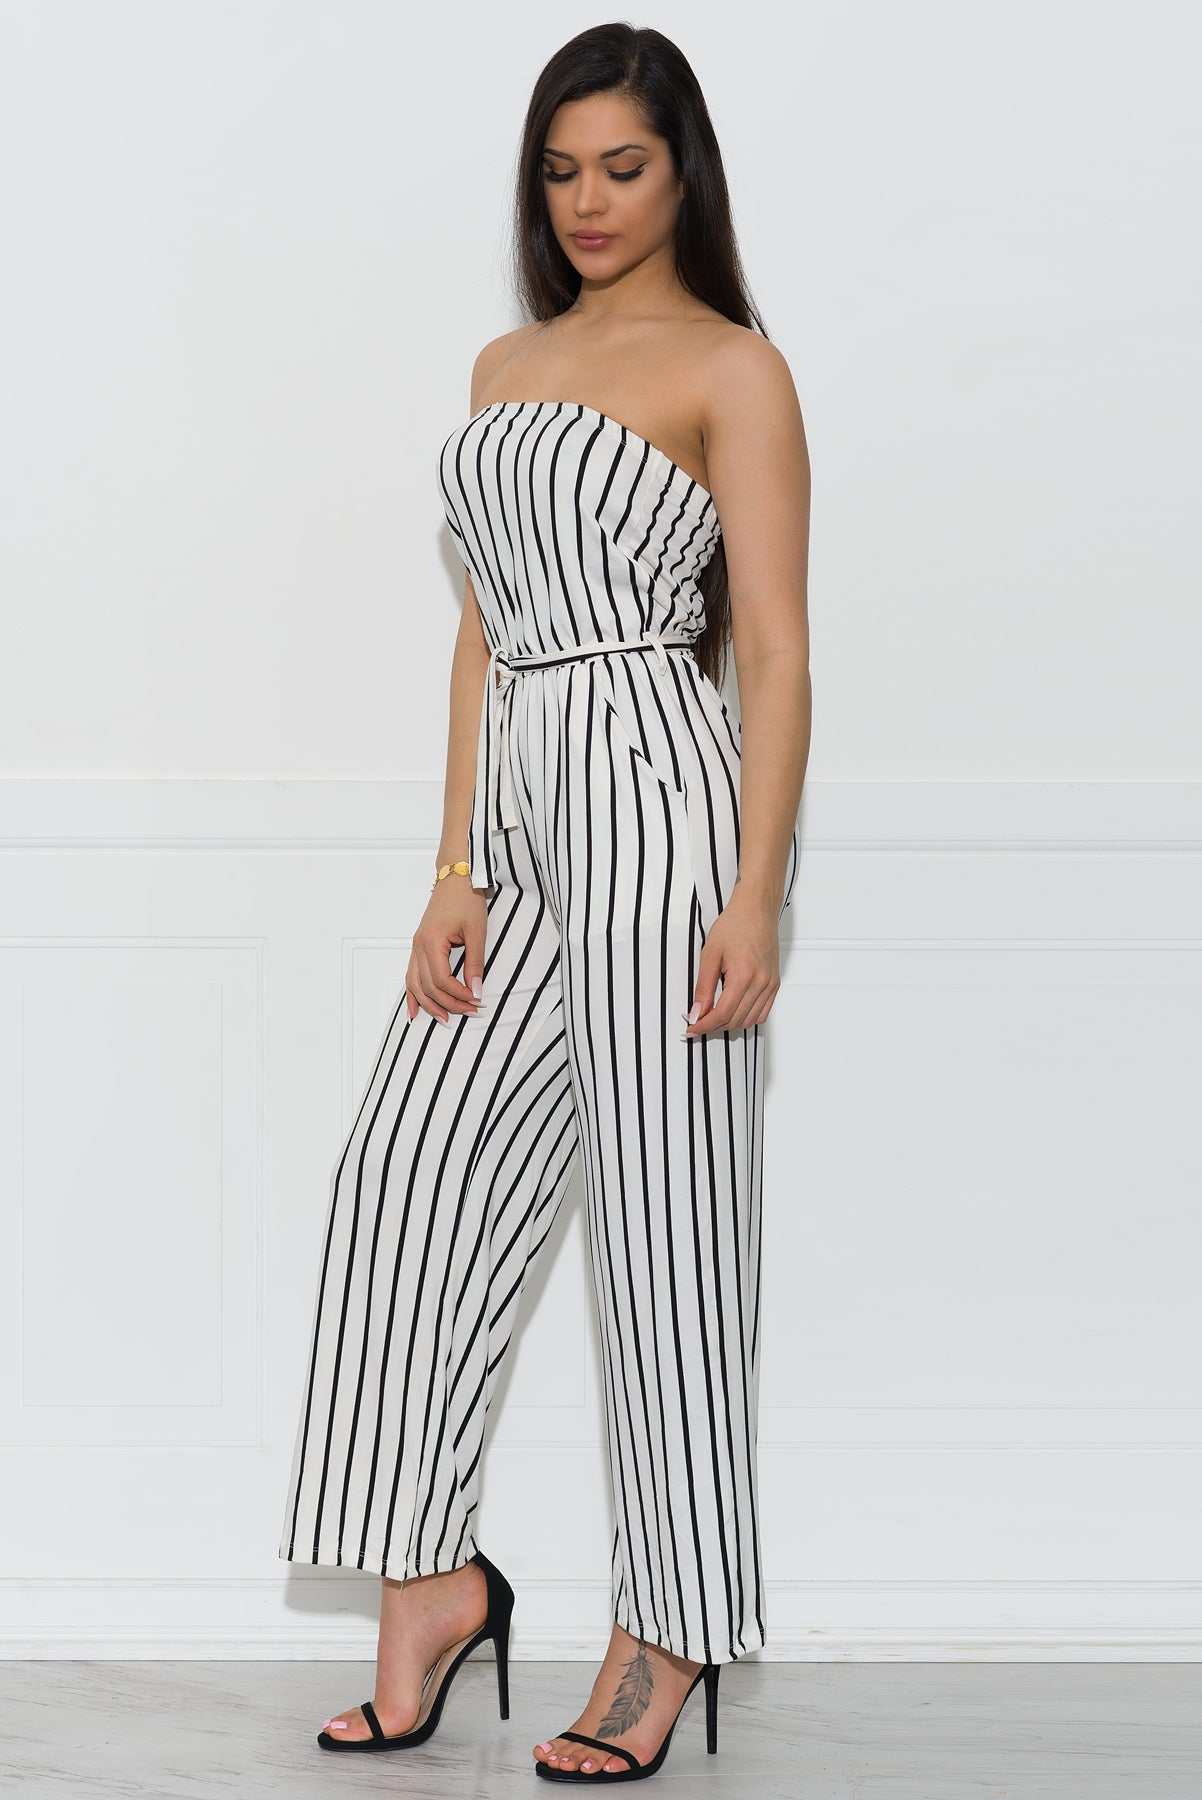 Tiffany Striped Jumpsuit - White